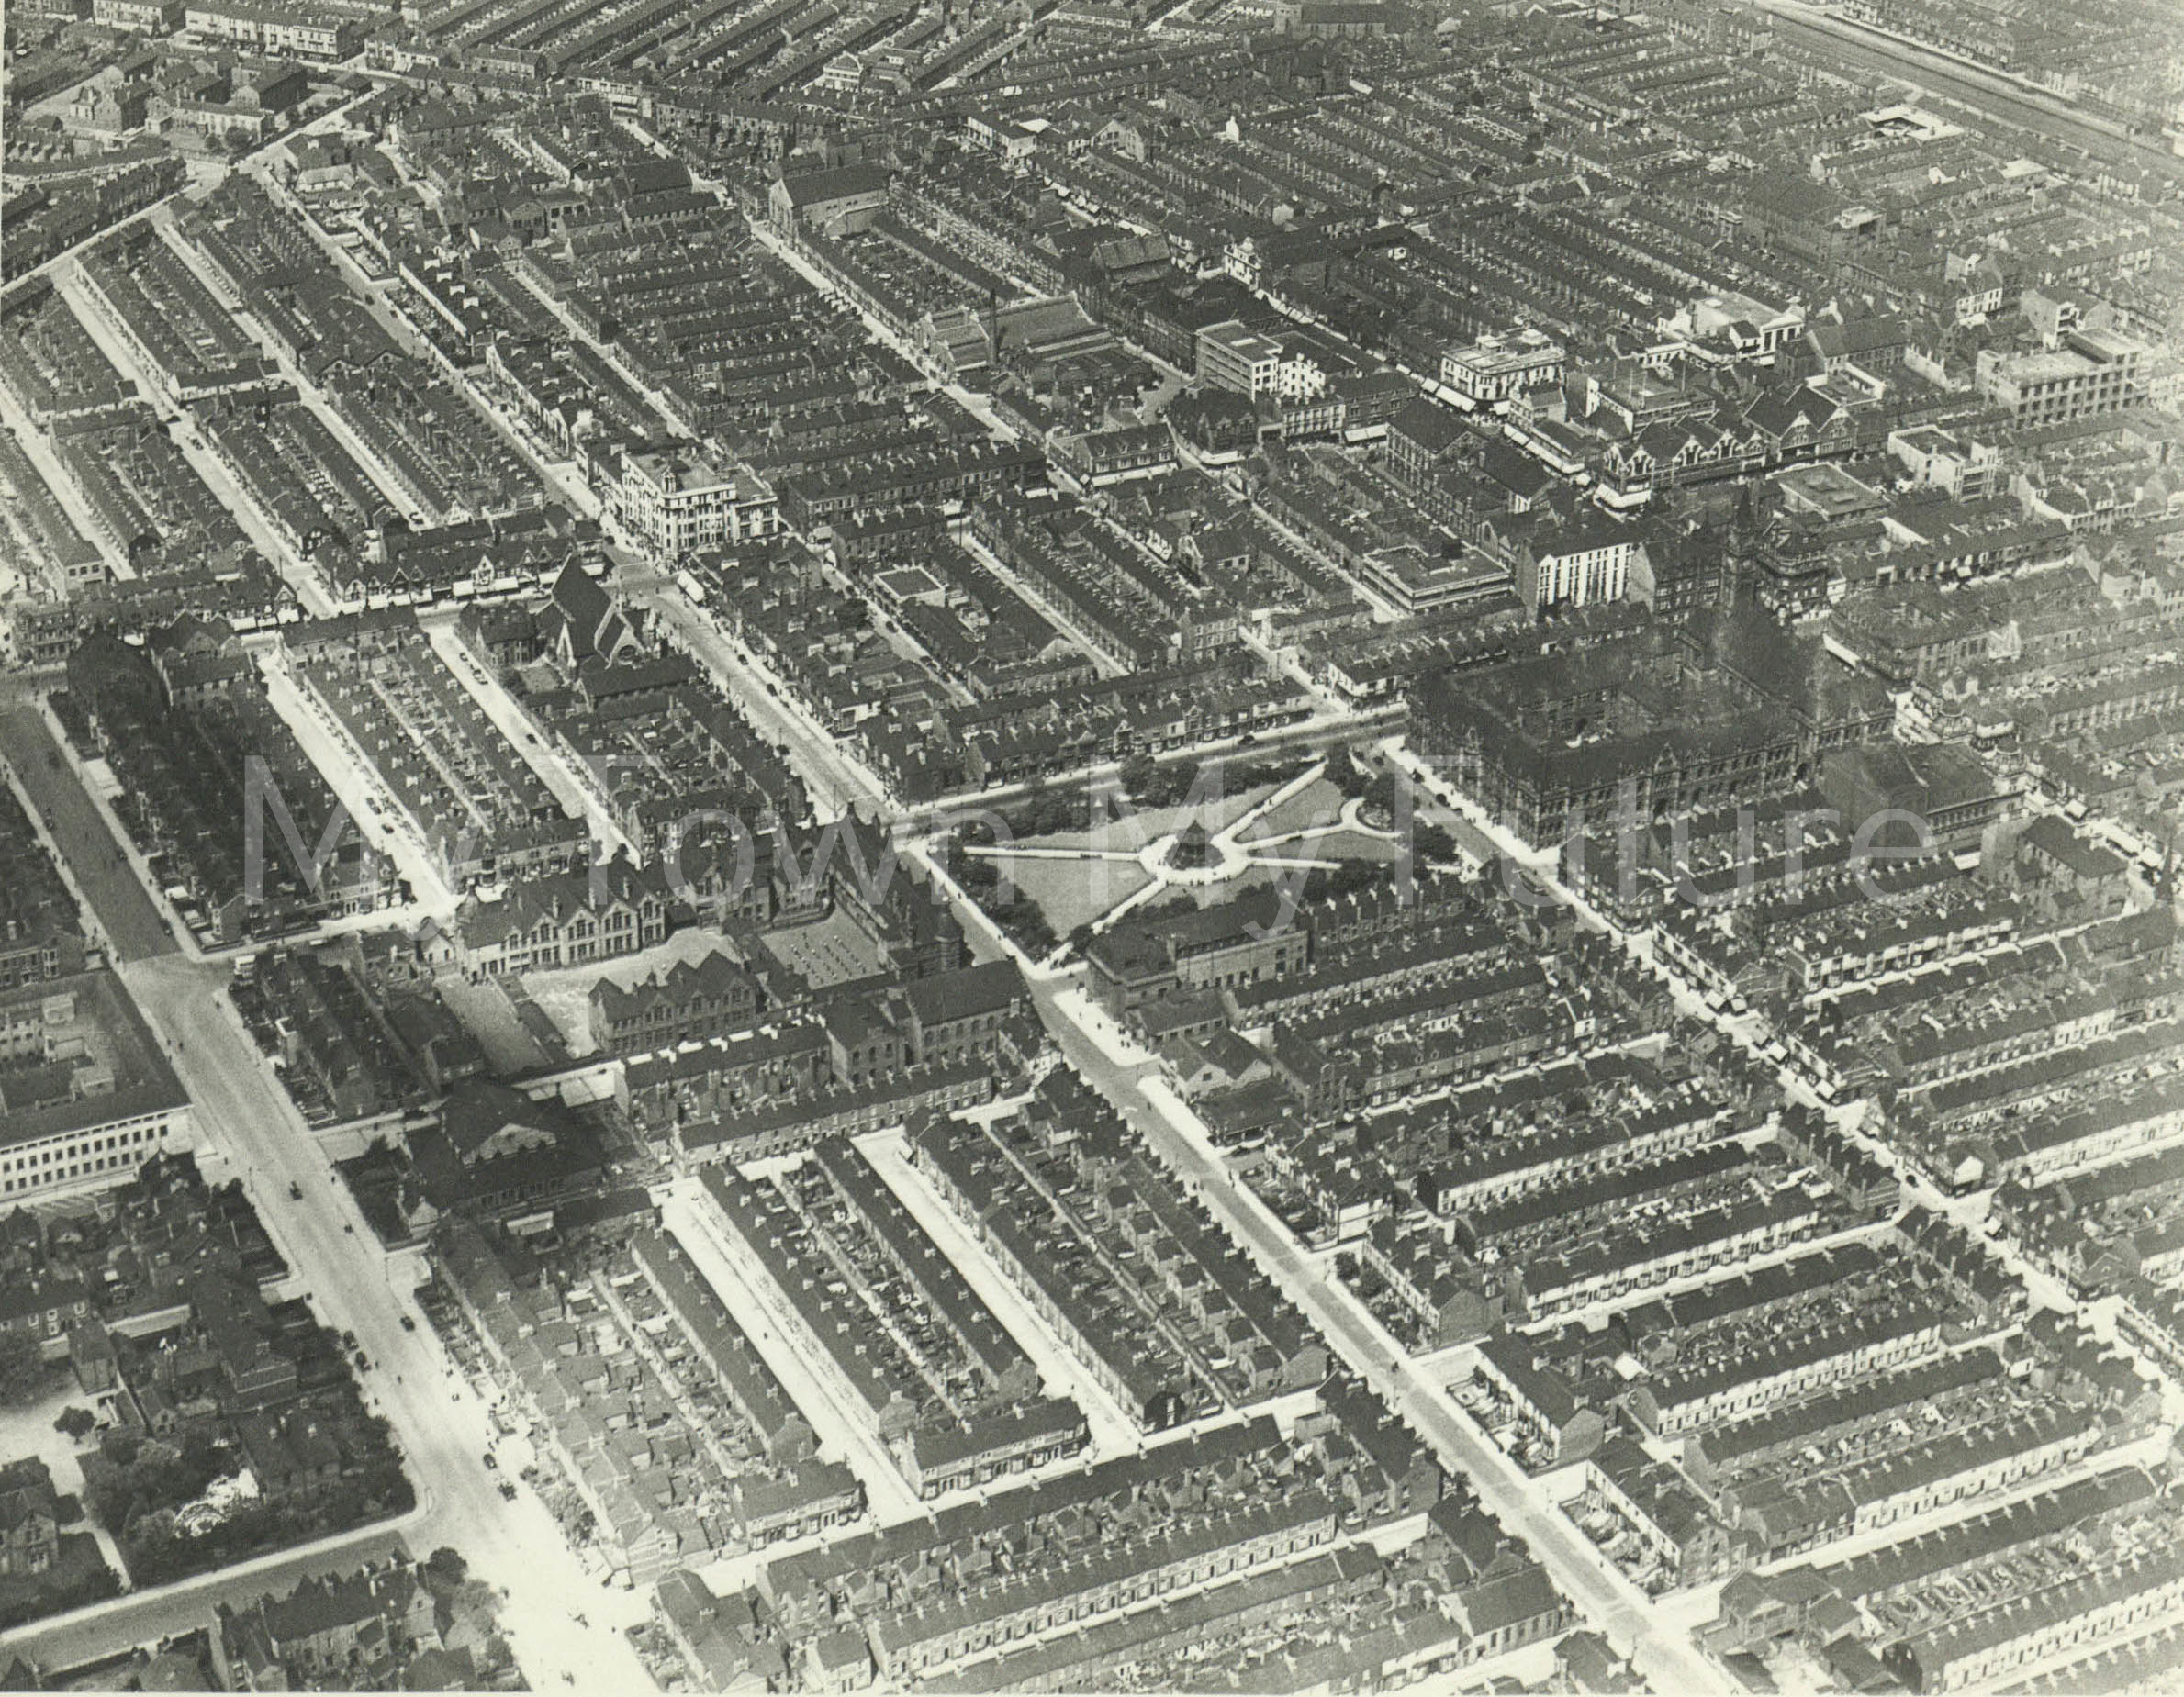 Middlesbrough Town Centre (1940).